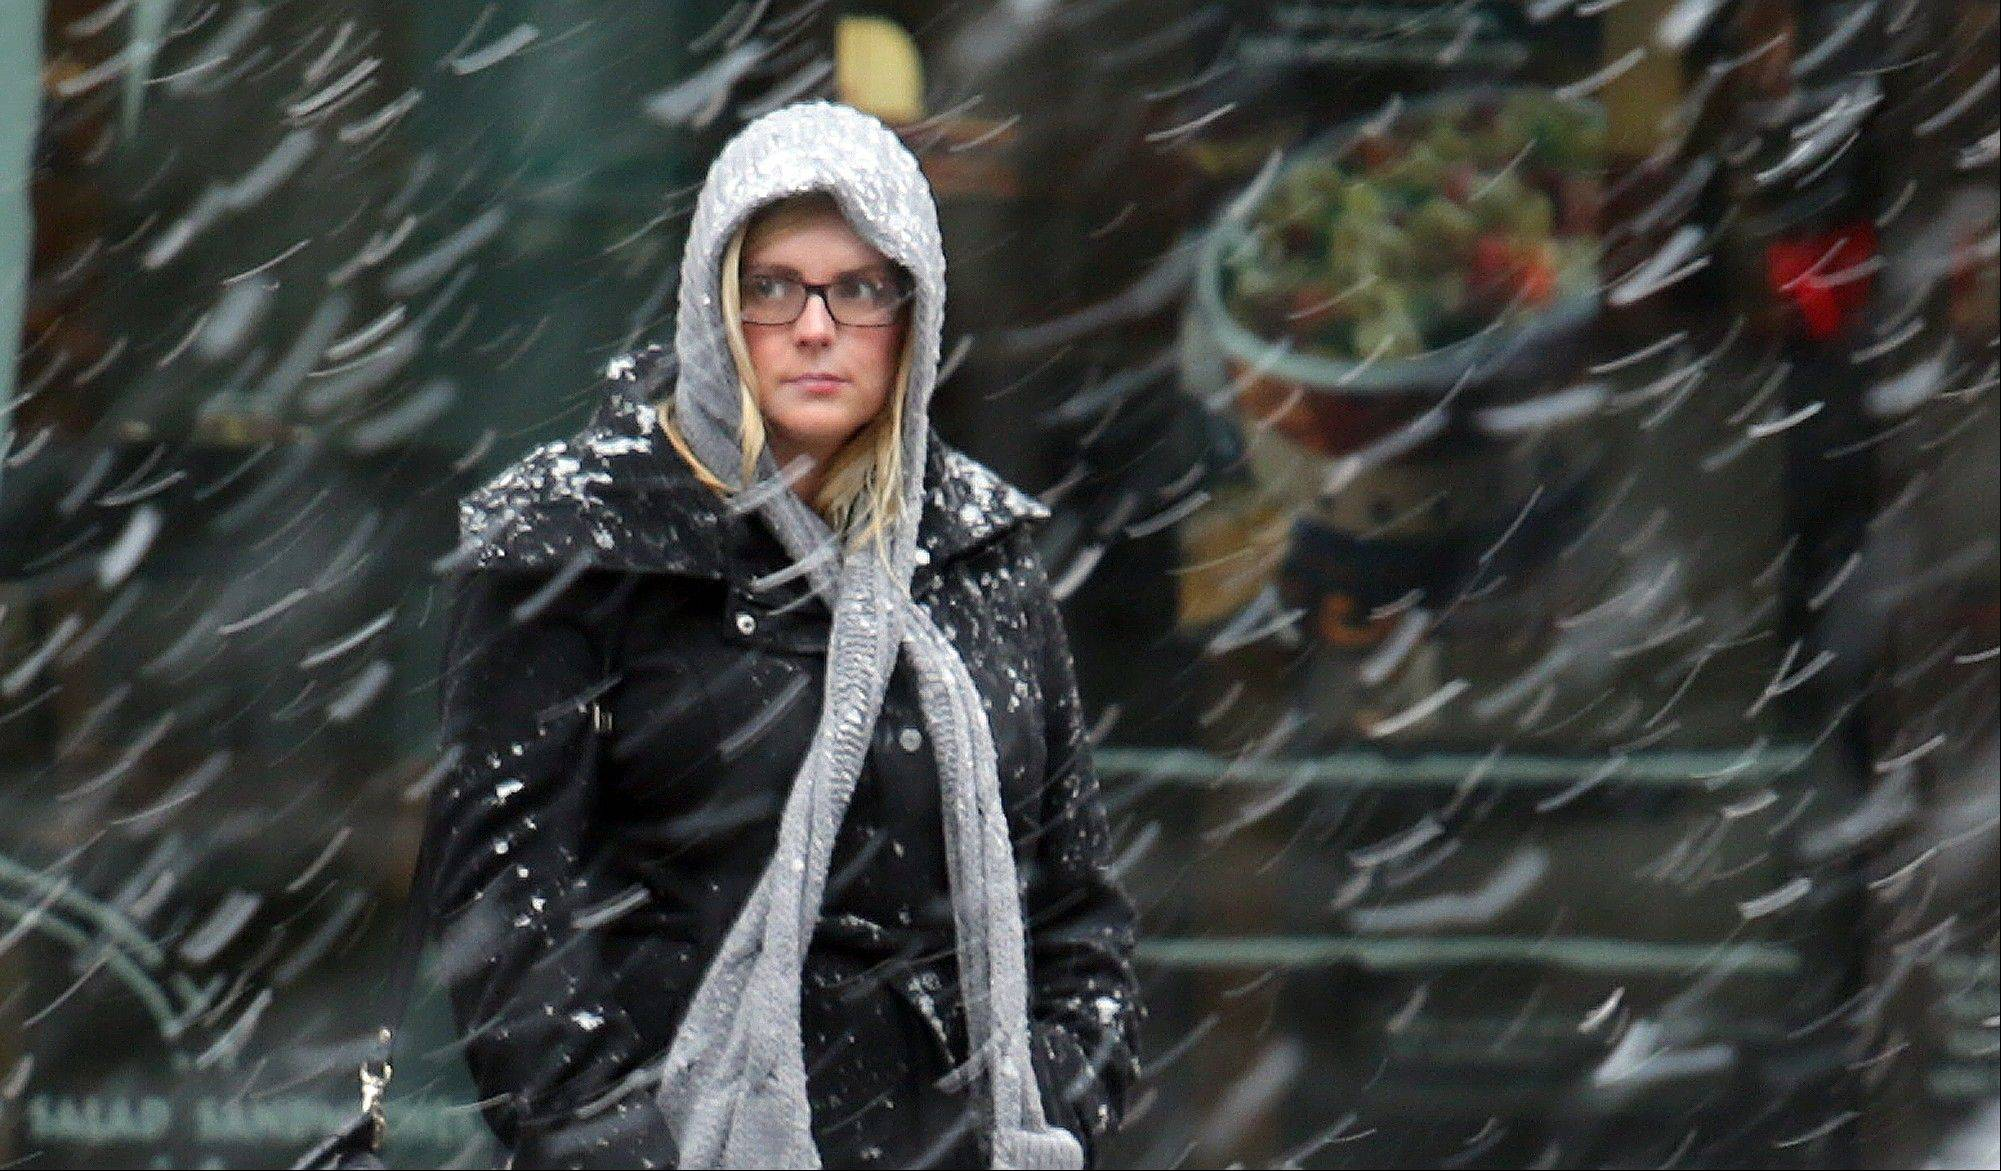 A morning commuter, bundled against the cold, watches the snow begin to fall in Washington early Wednesday.